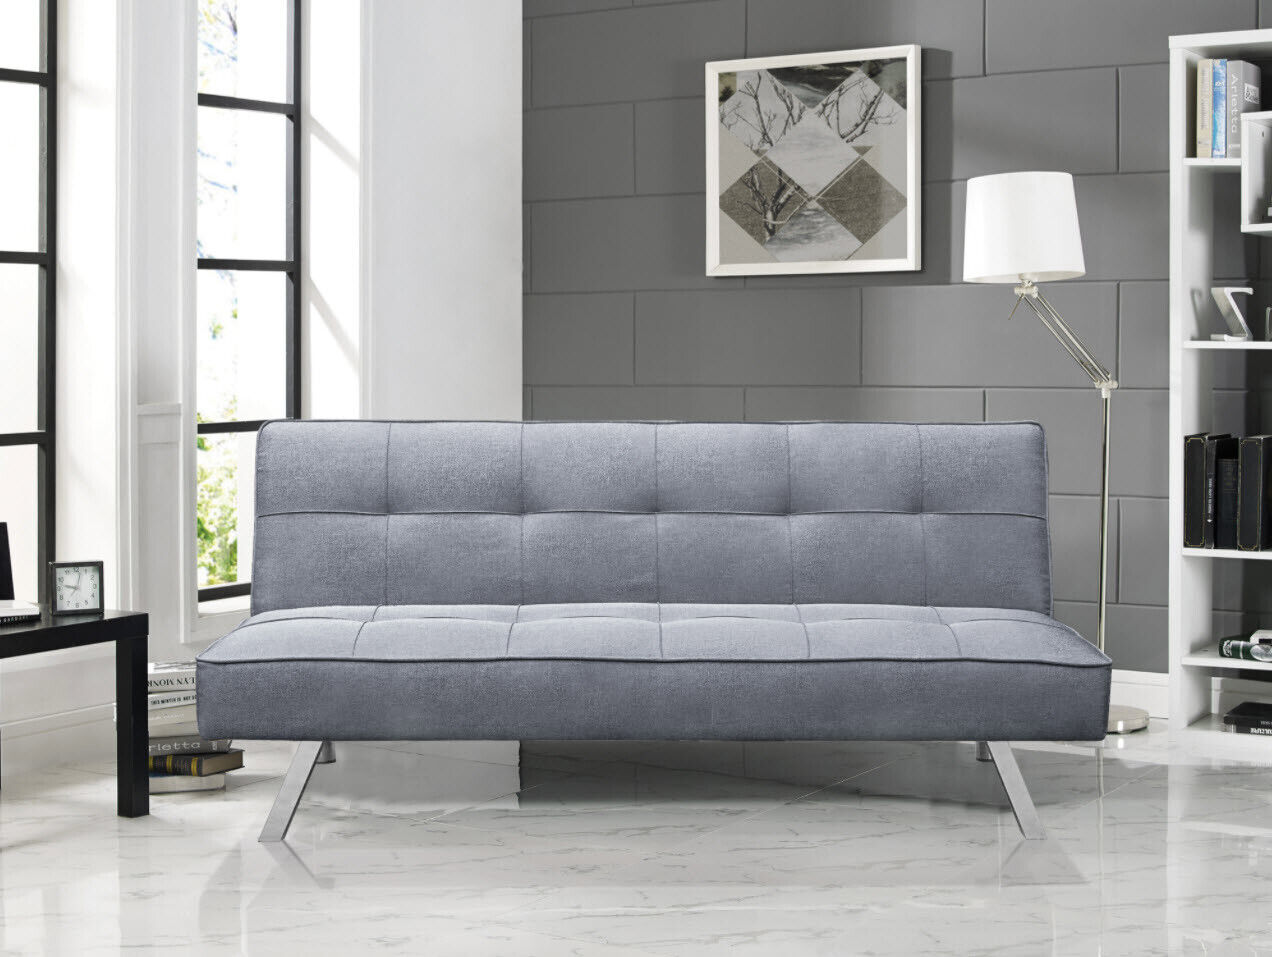 SOFA BED SLEEPER 3-Seat Light Gray Tufted Fabric Chrome Convertible Couch Futon